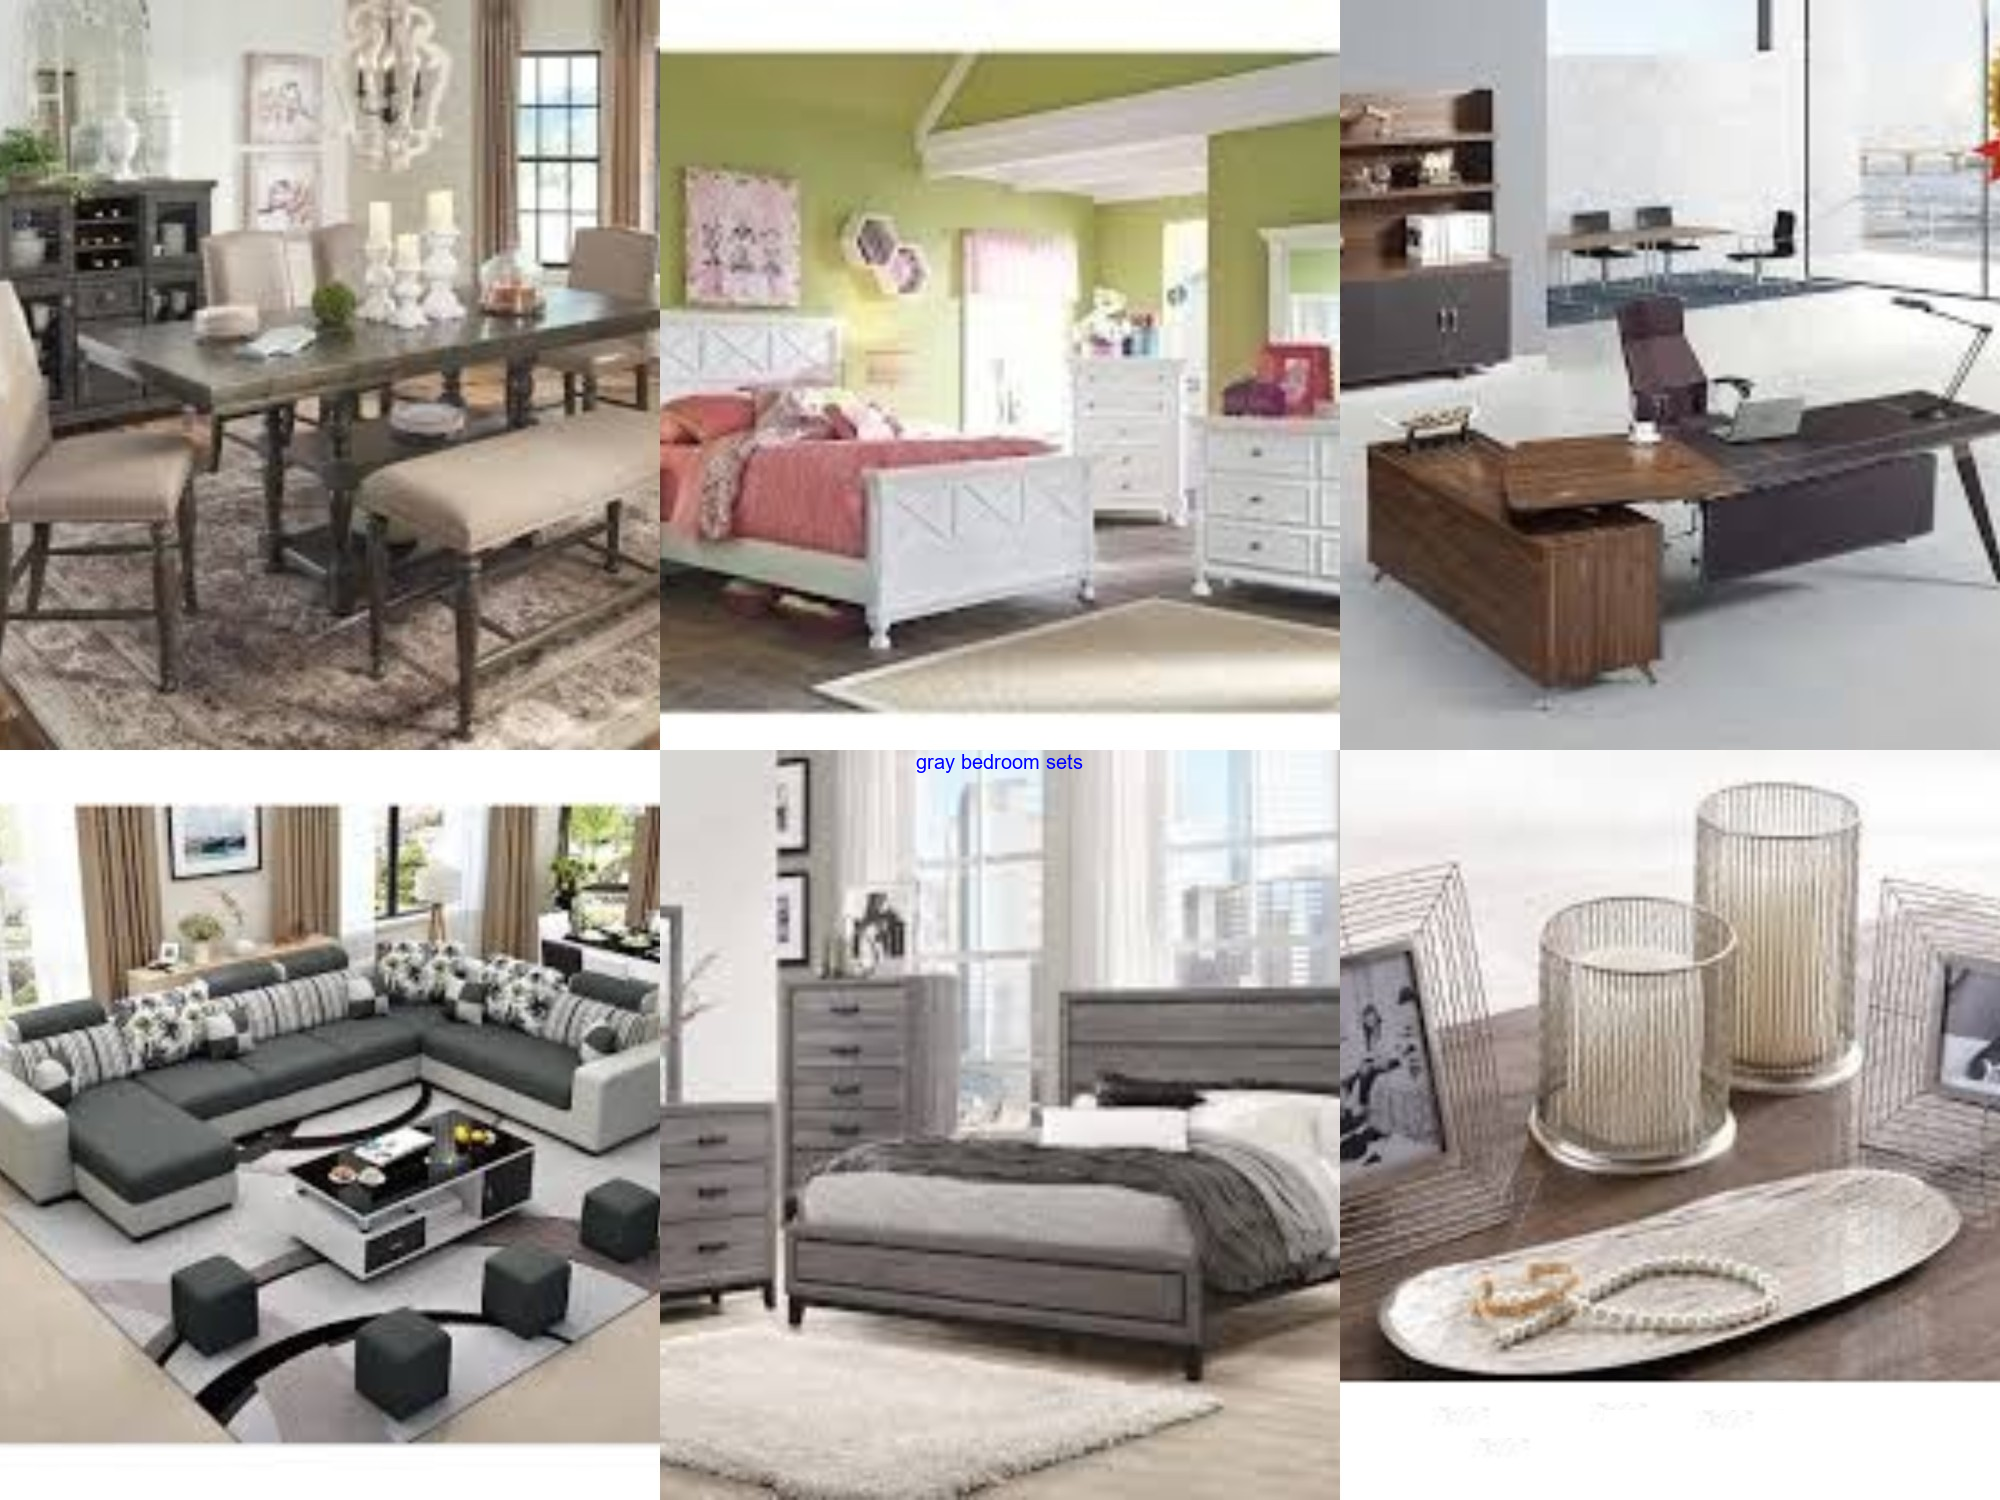 gray bedroom sets in 6  Furniture prices, Ashley furniture